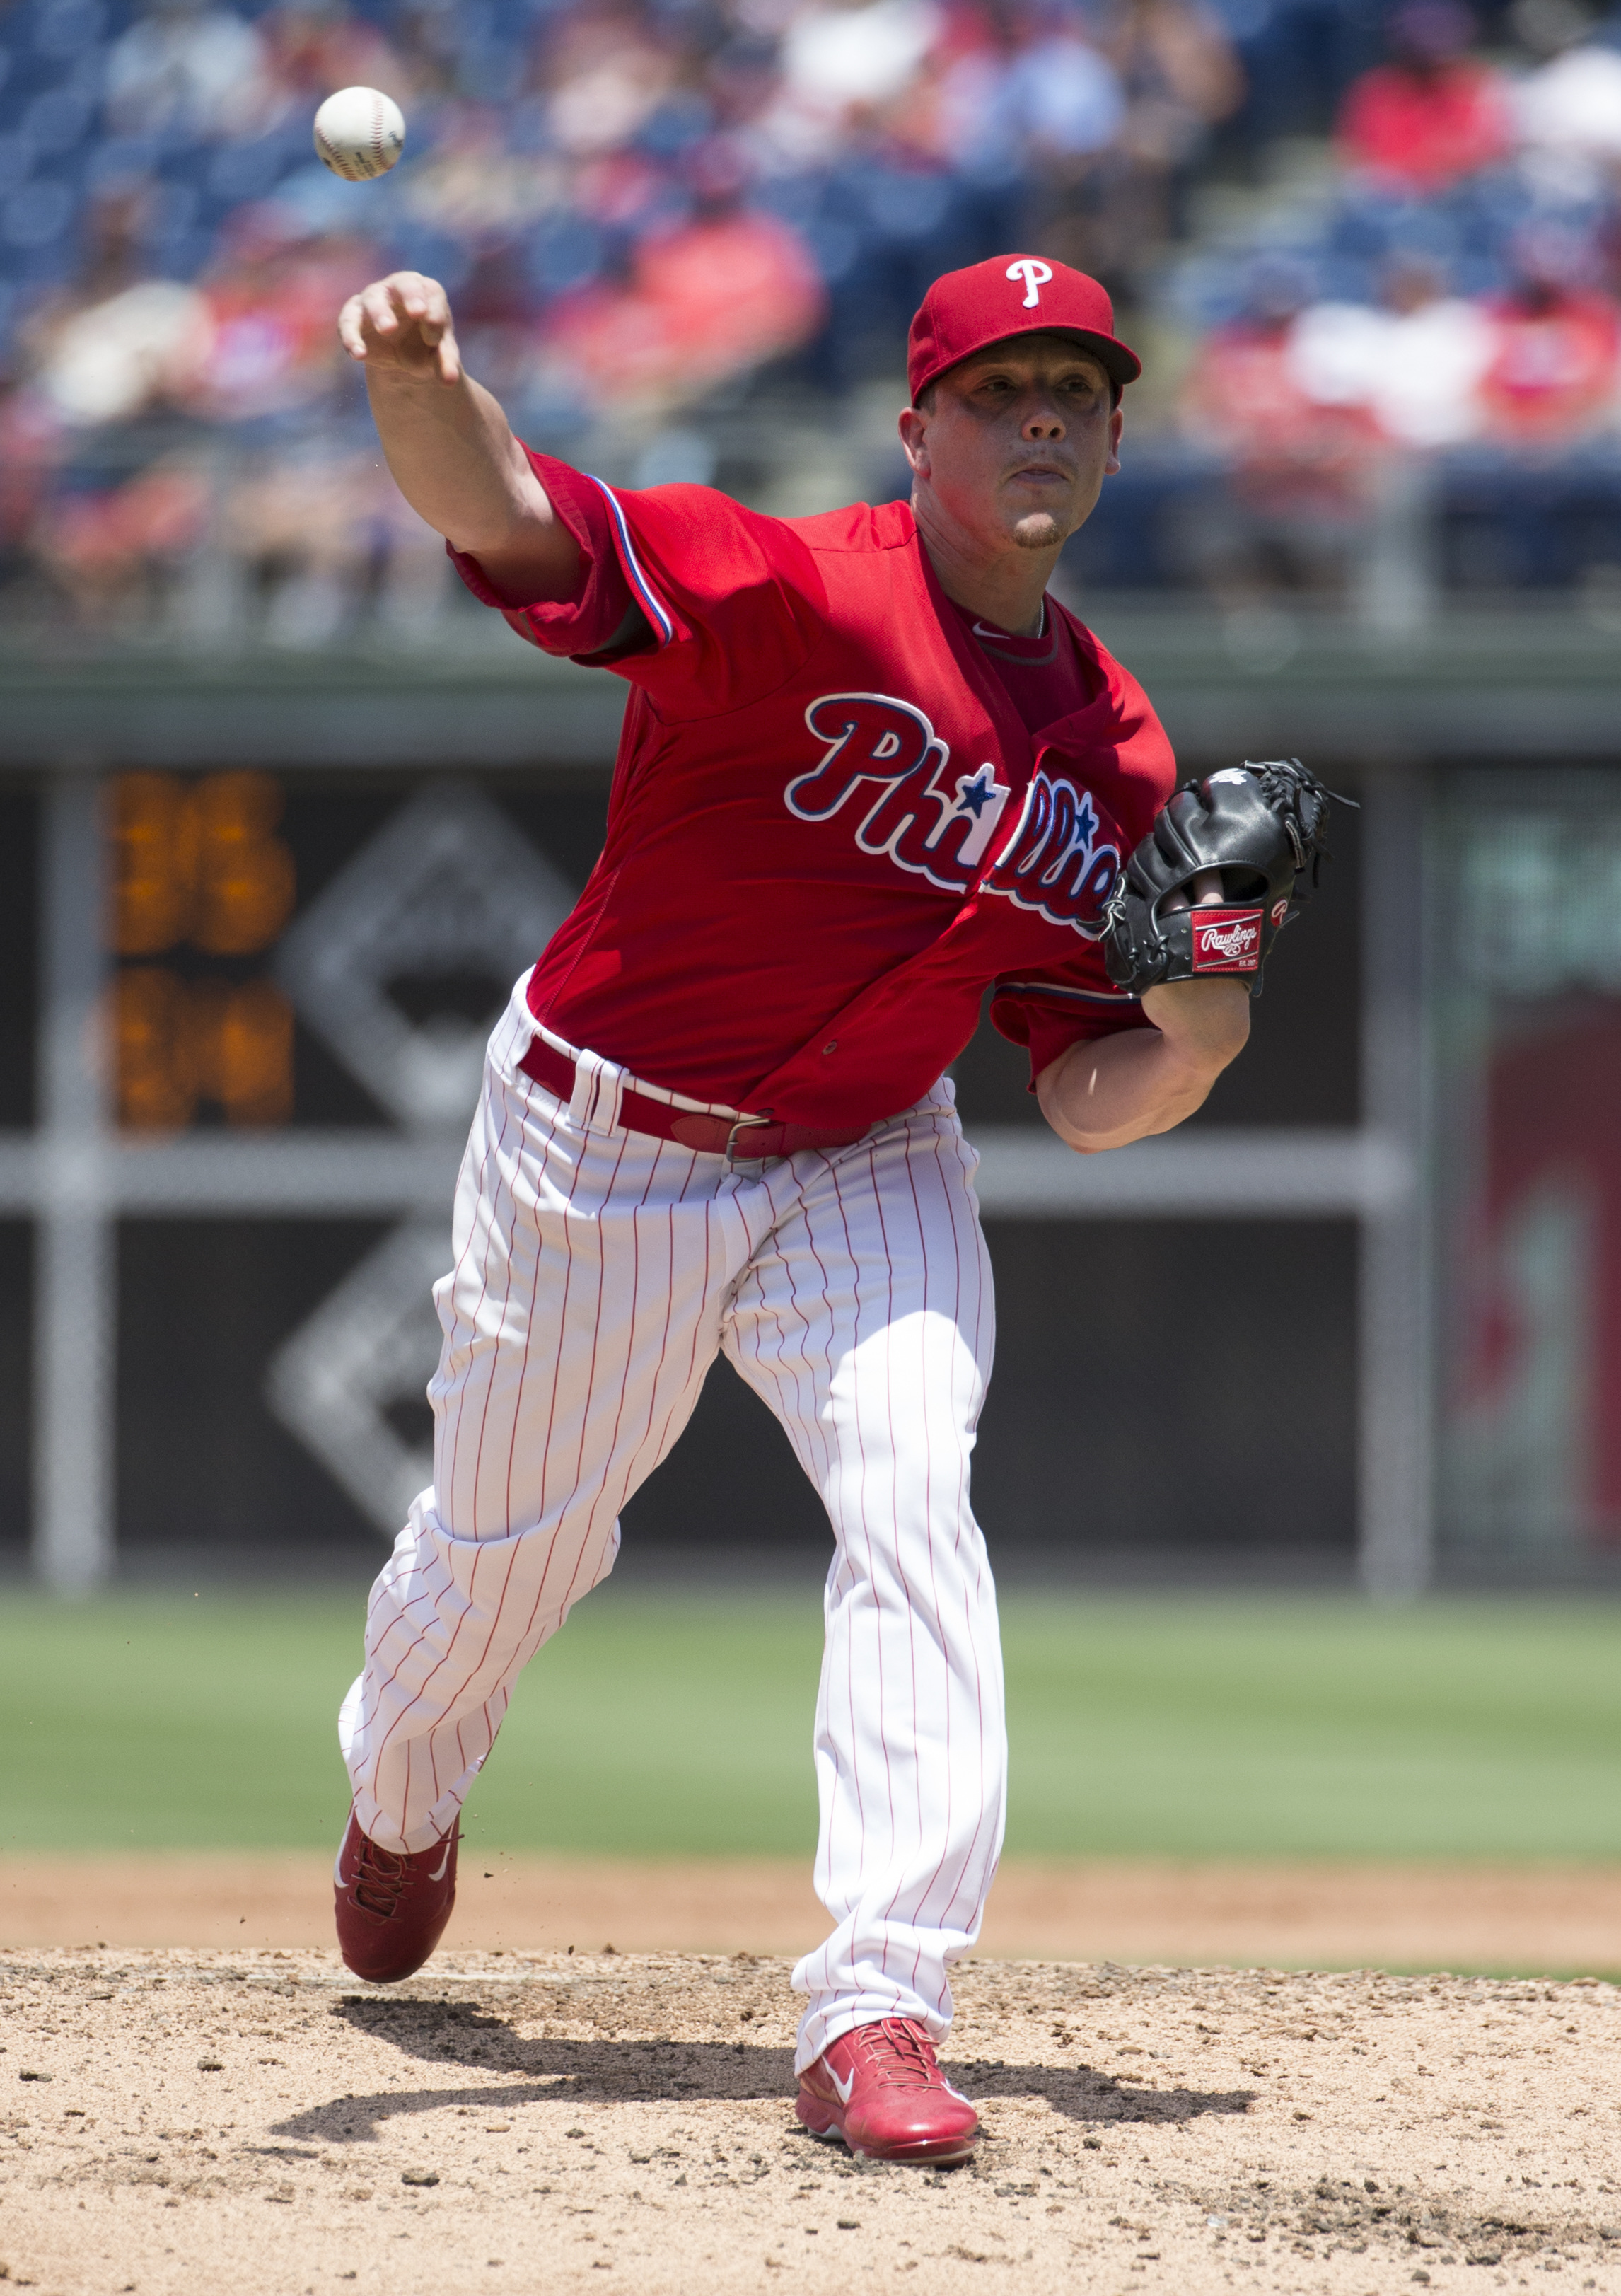 Philadelphia Phillies starting pitcher Jeremy Hellickson throws a pitch during the third inning of a baseball game against the Atlanta Braves, Wednesday, July 6, 2016, in Philadelphia. (AP Photo/Chris Szagola)